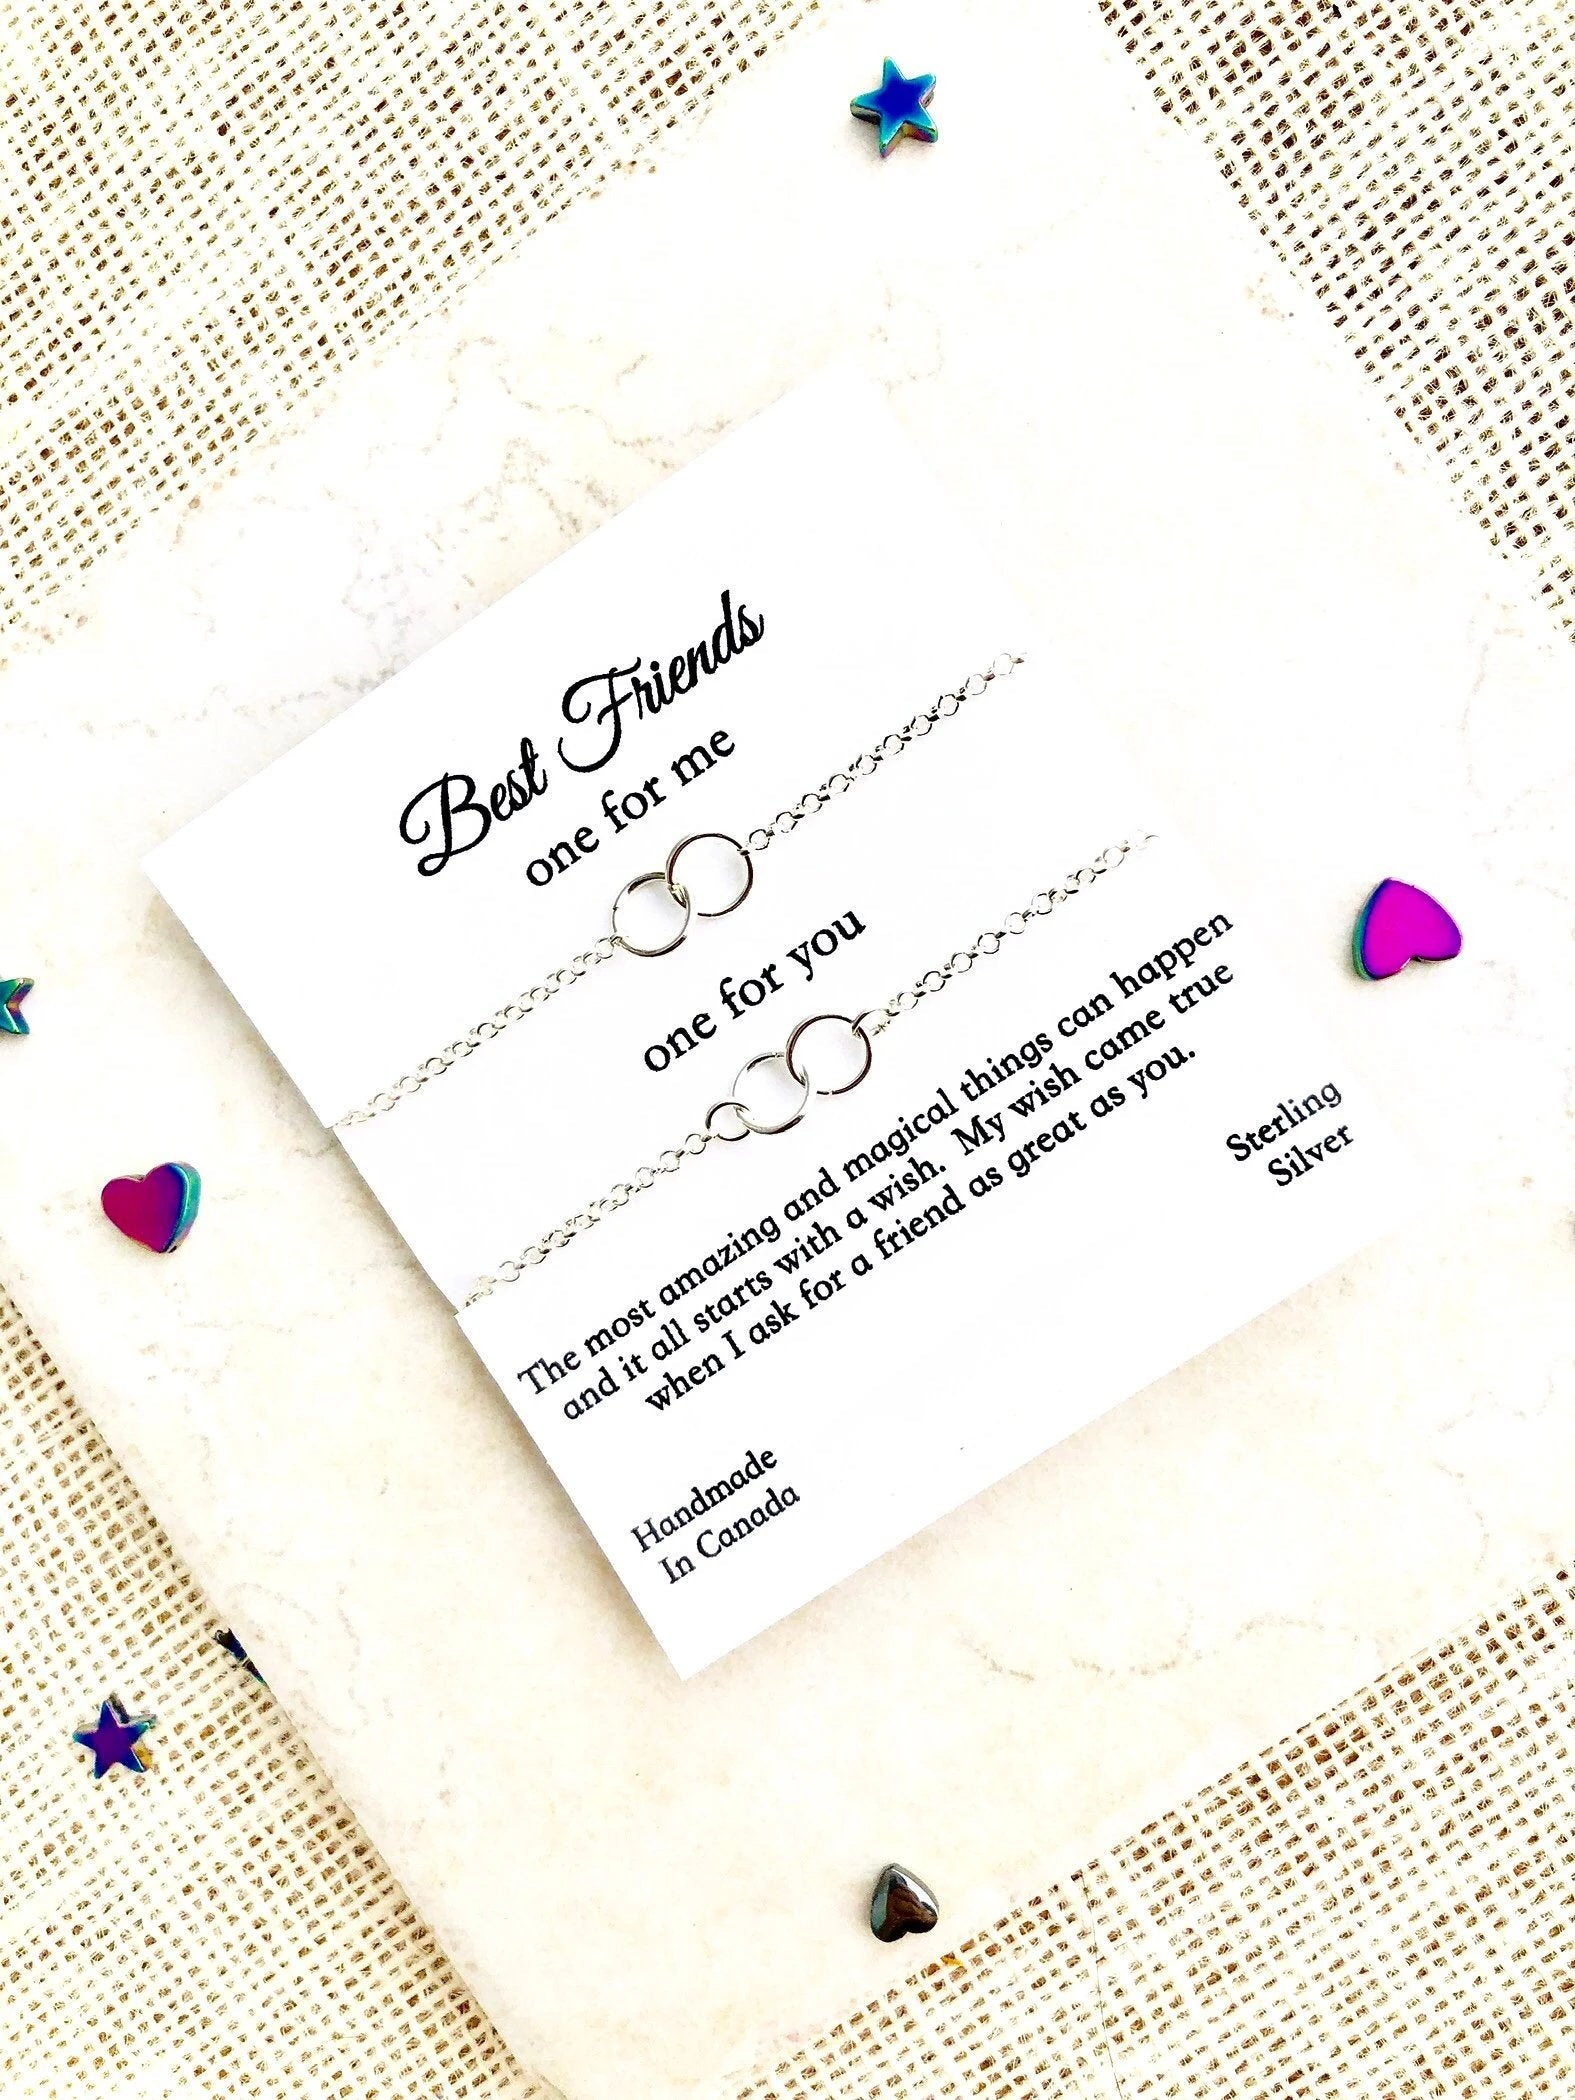 Lily Daily Boutique, BEST FRIEND Eternity Necklace For 2, Sterling Silver Infinity Necklace, Sister Necklace For 2, Silver Circle Necklace, Birthday Gift For Best Friend